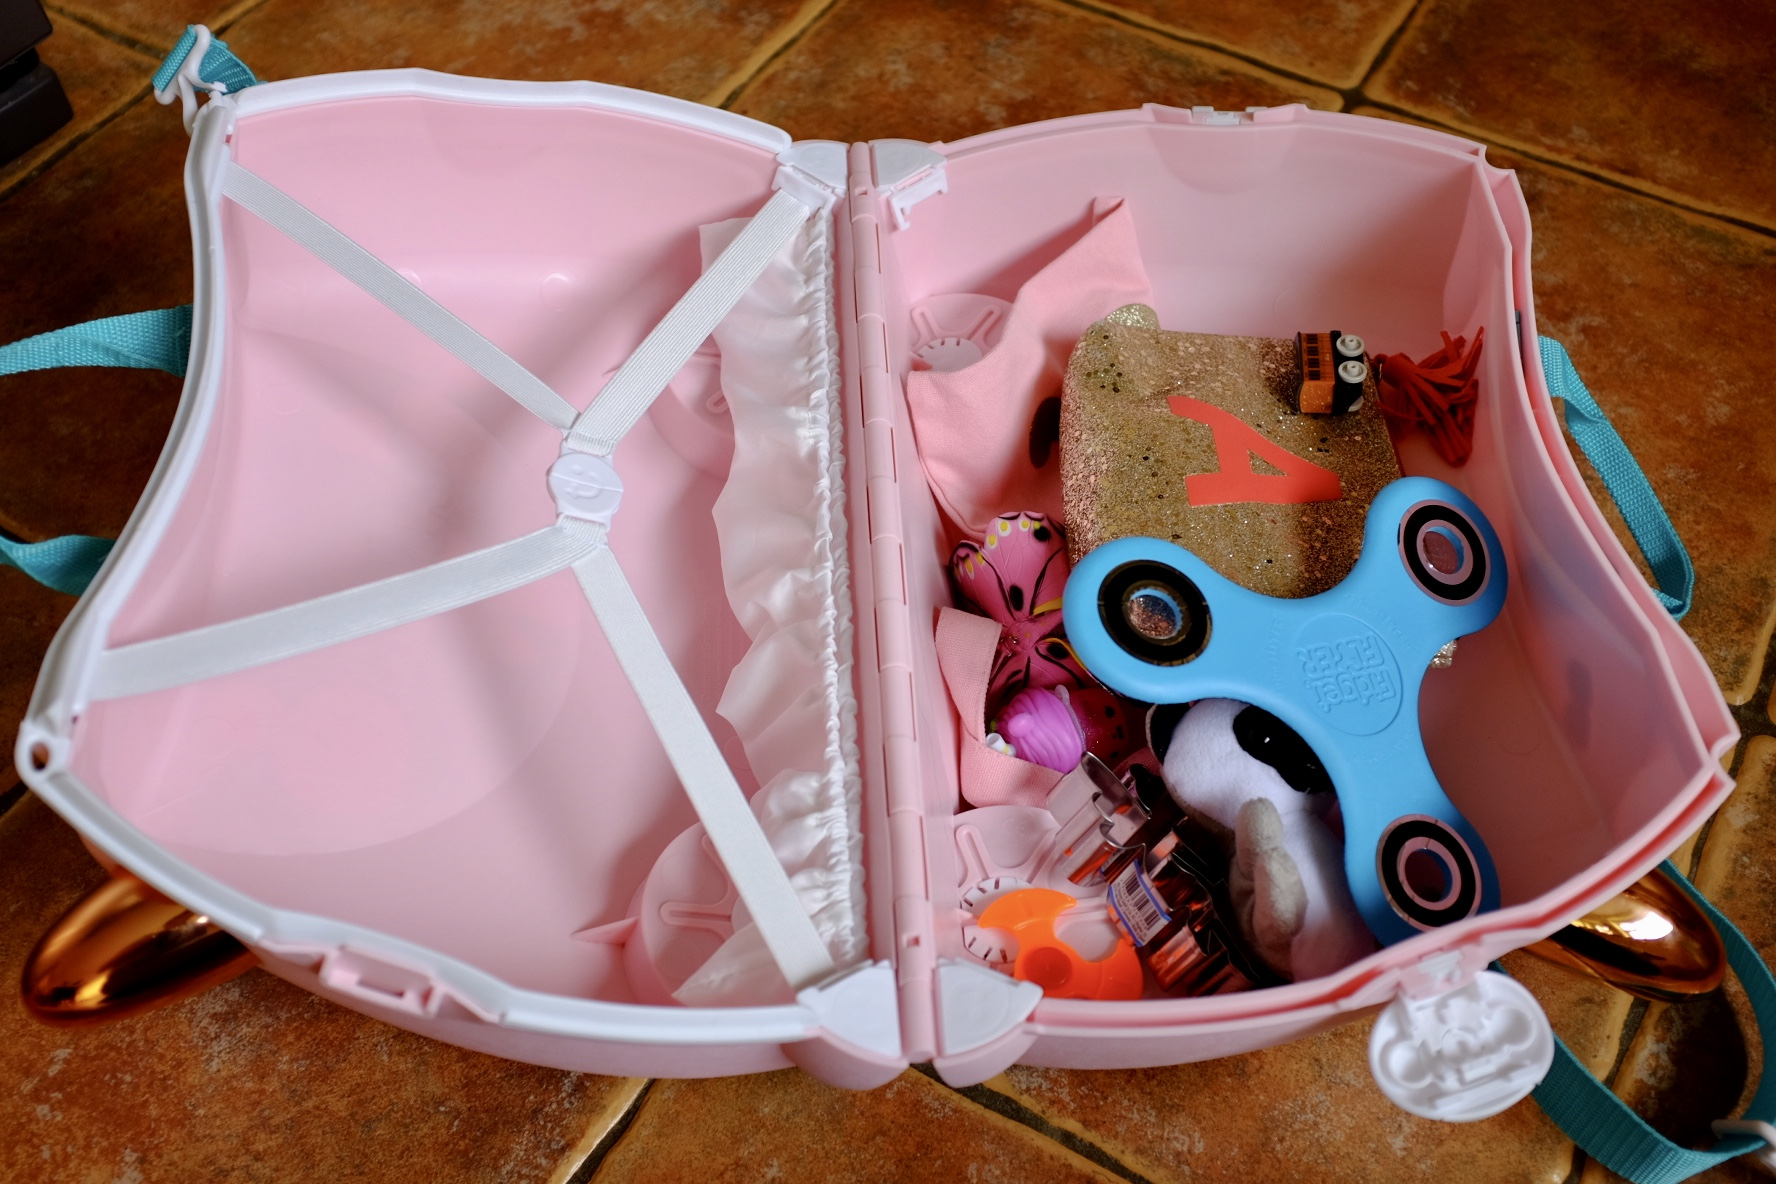 Flossi the Flamingo Trunki with toys in